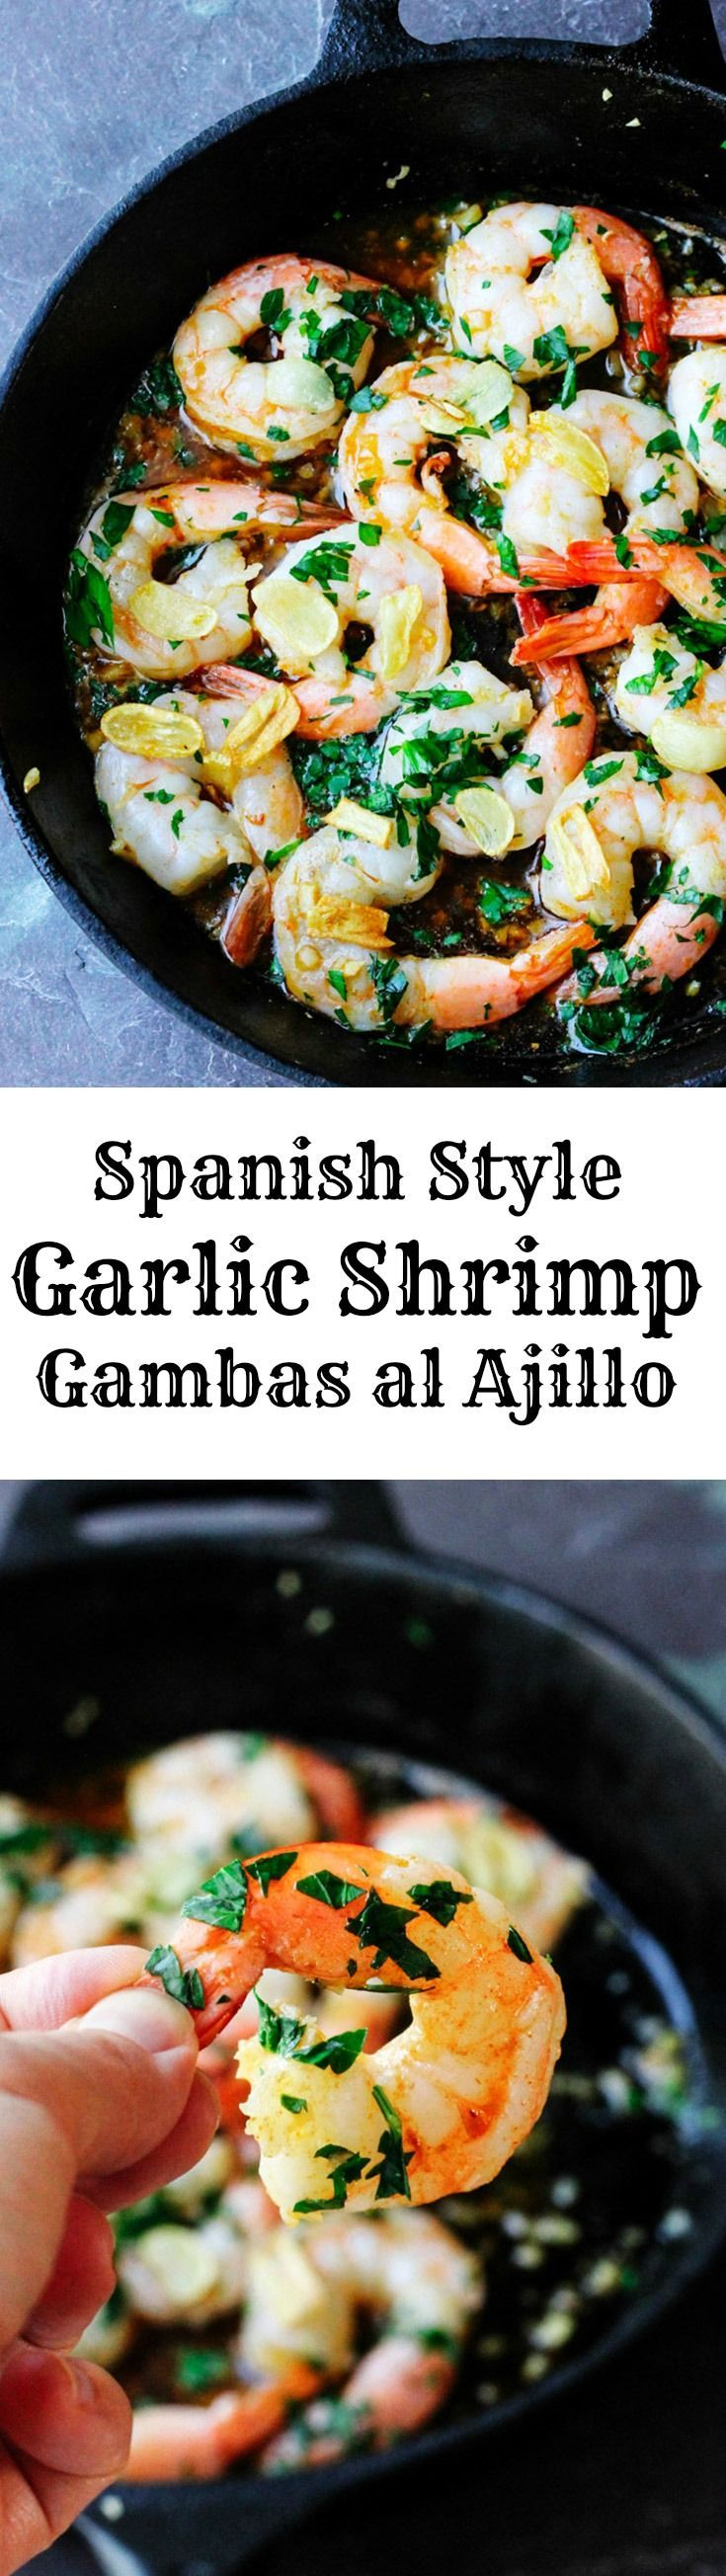 Spanish Style Garlic Shrimp is cooked in olive oil with tons of garlic ...